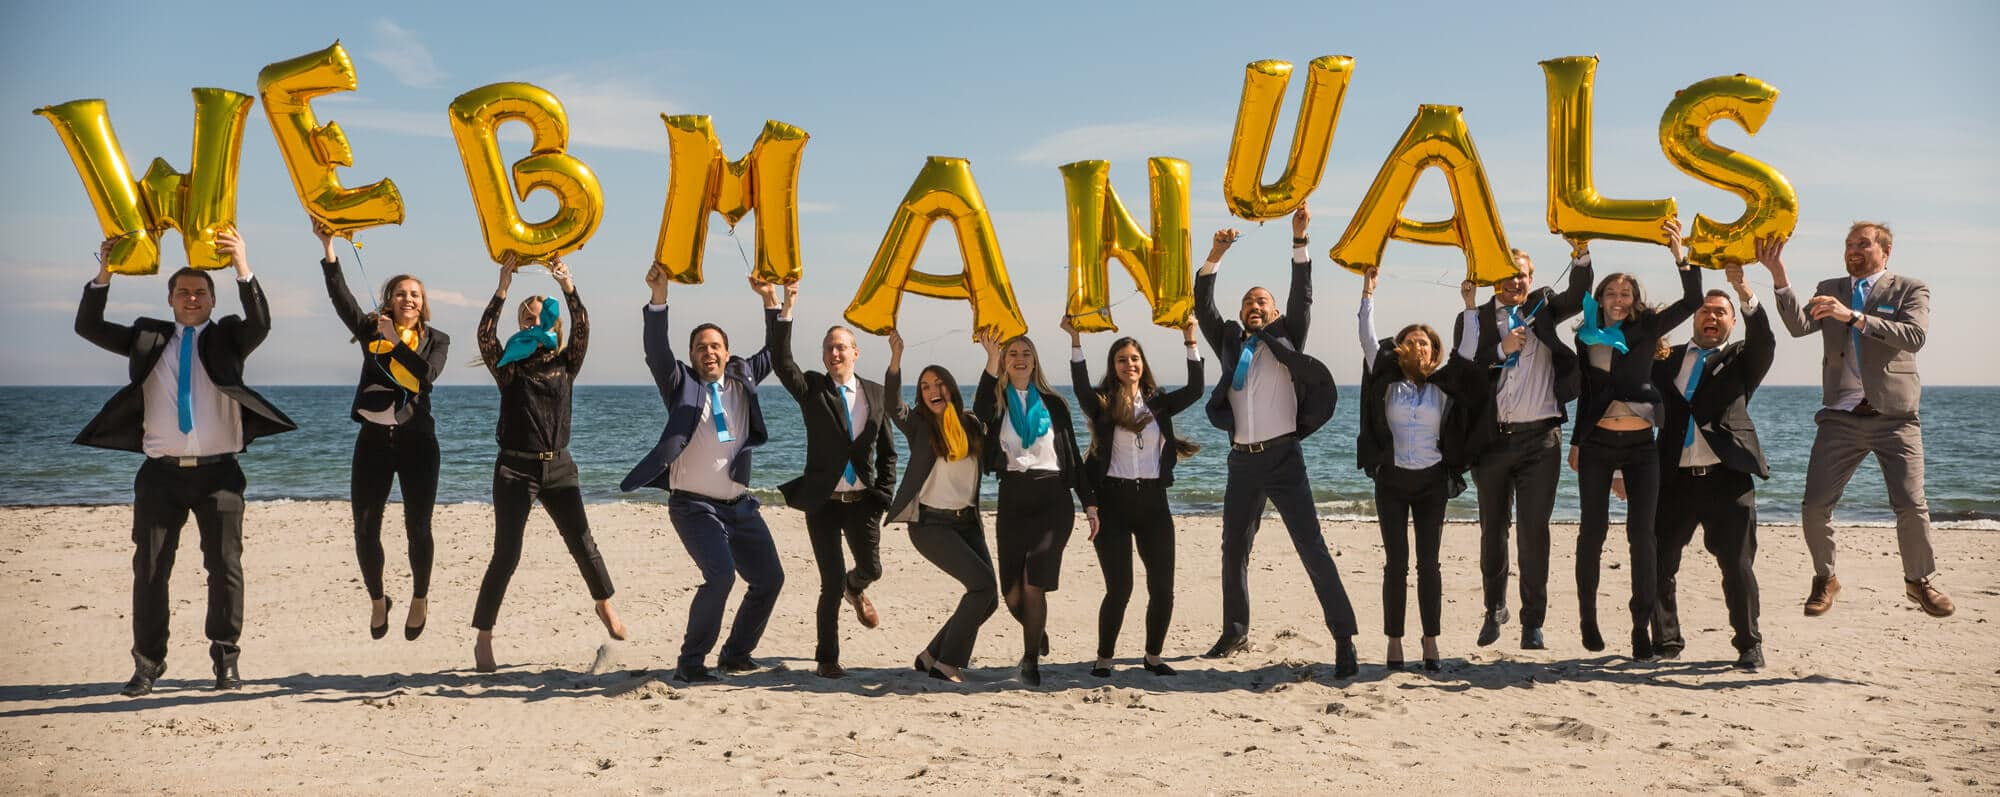 web manuals employees holding letters on the beach